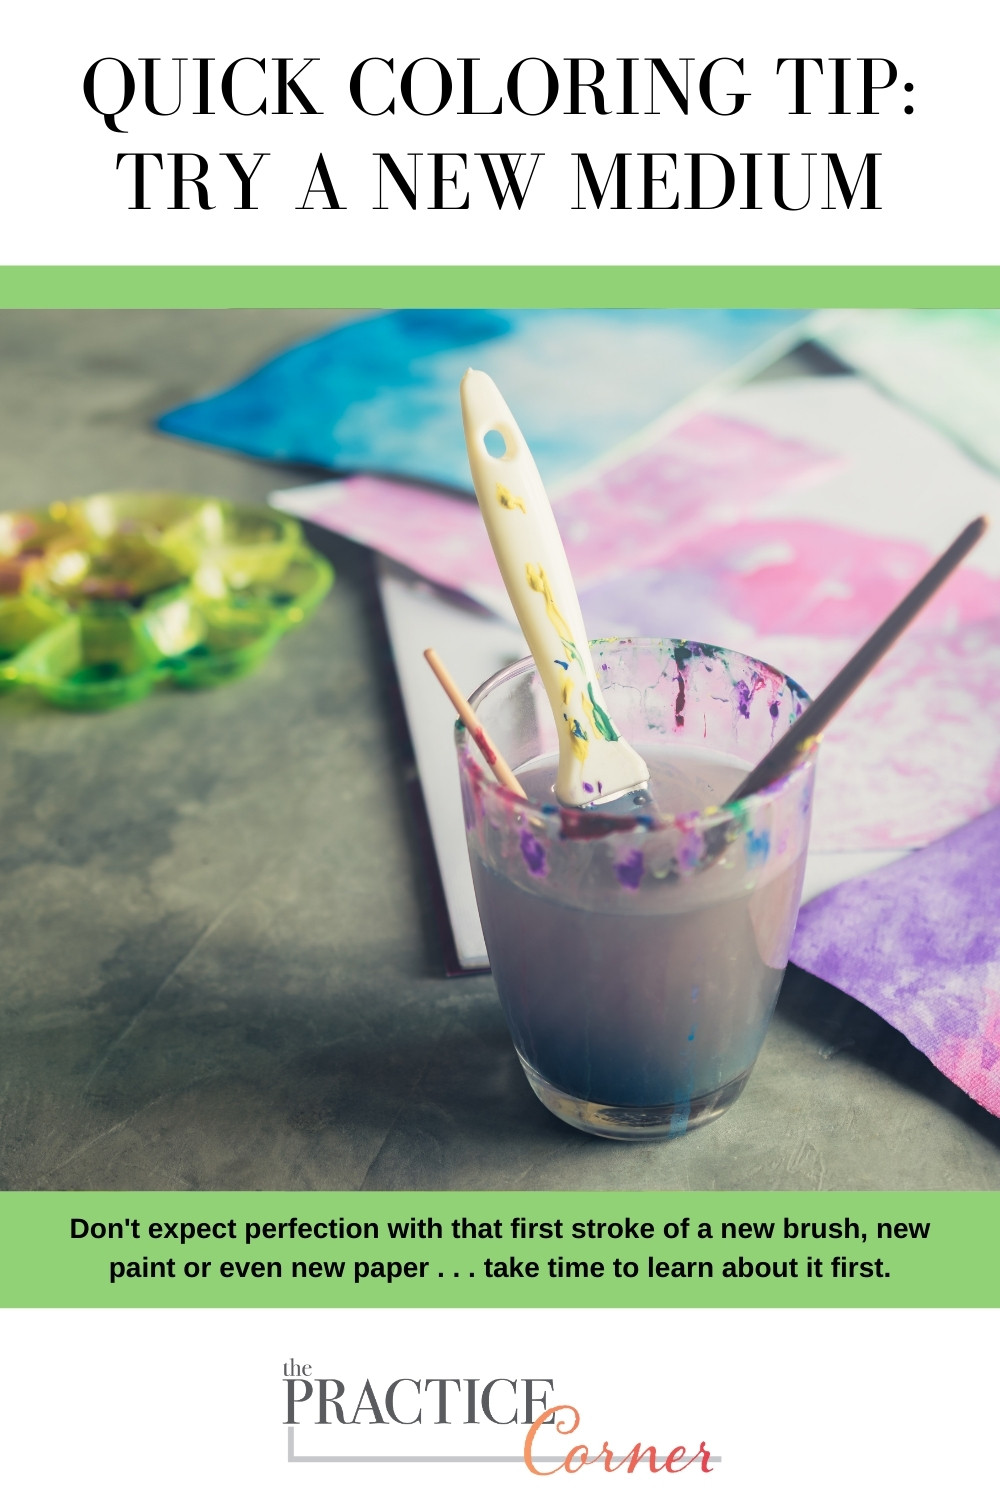 Trying a new art medium or supply can be frustrating. | The Practice Corner | #coloringtips